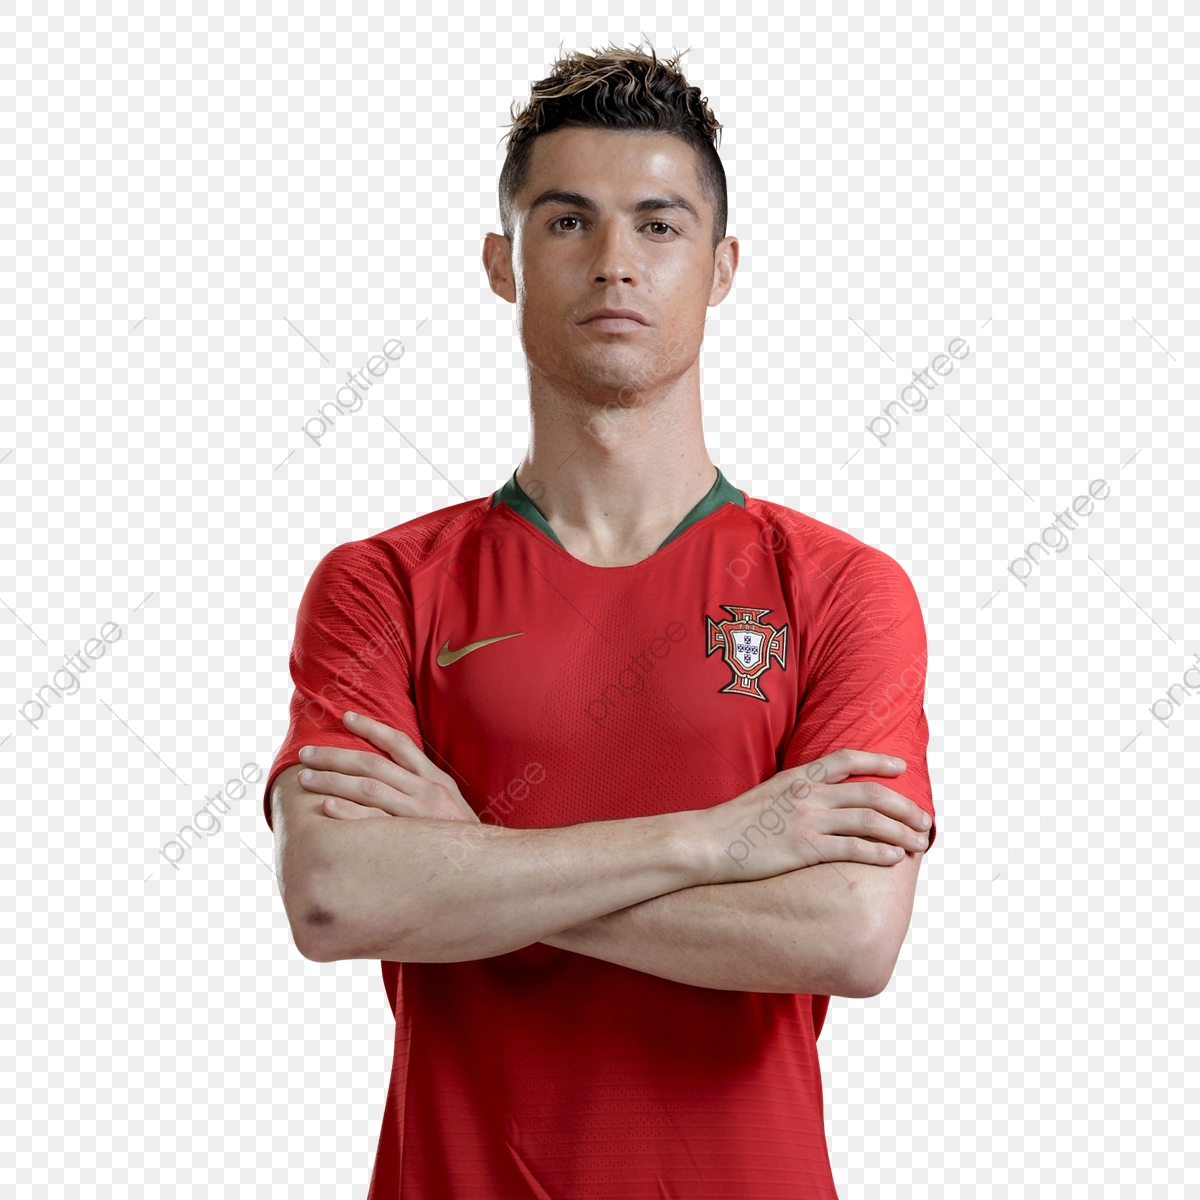 Cr7 Png, Cr7, Cristiano Ronaldo PNG Transparent Clipart Image and.